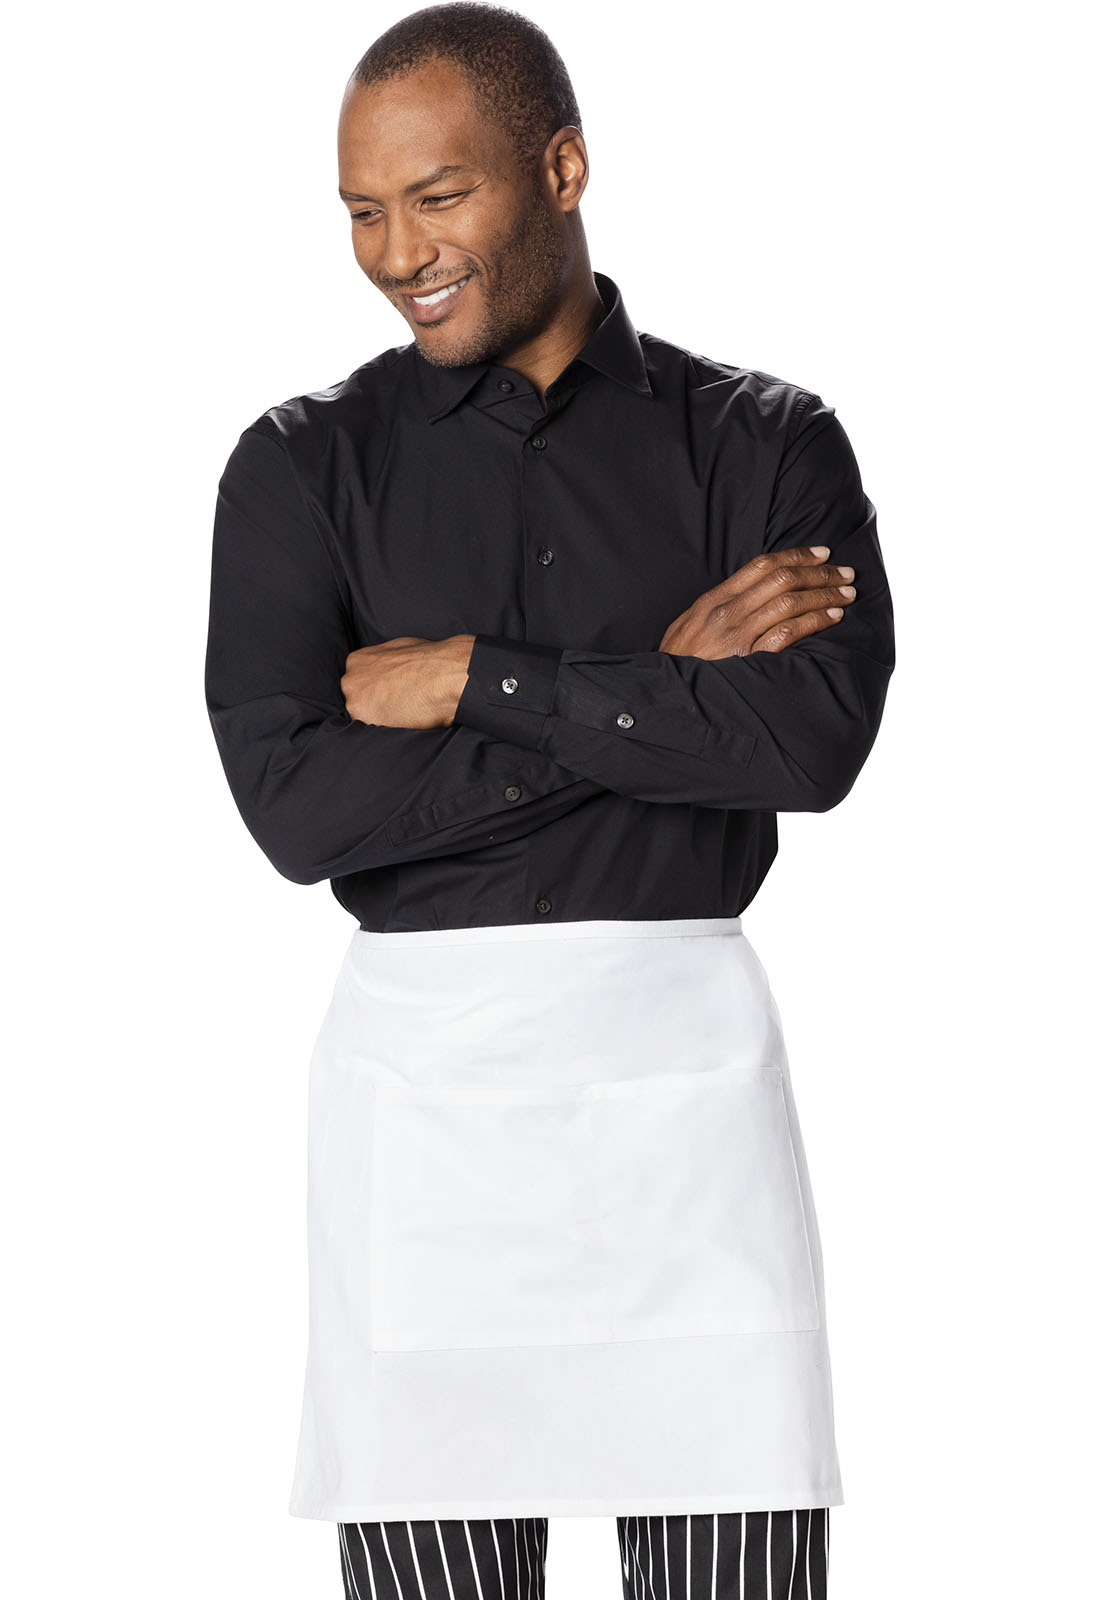 White apron for doctors